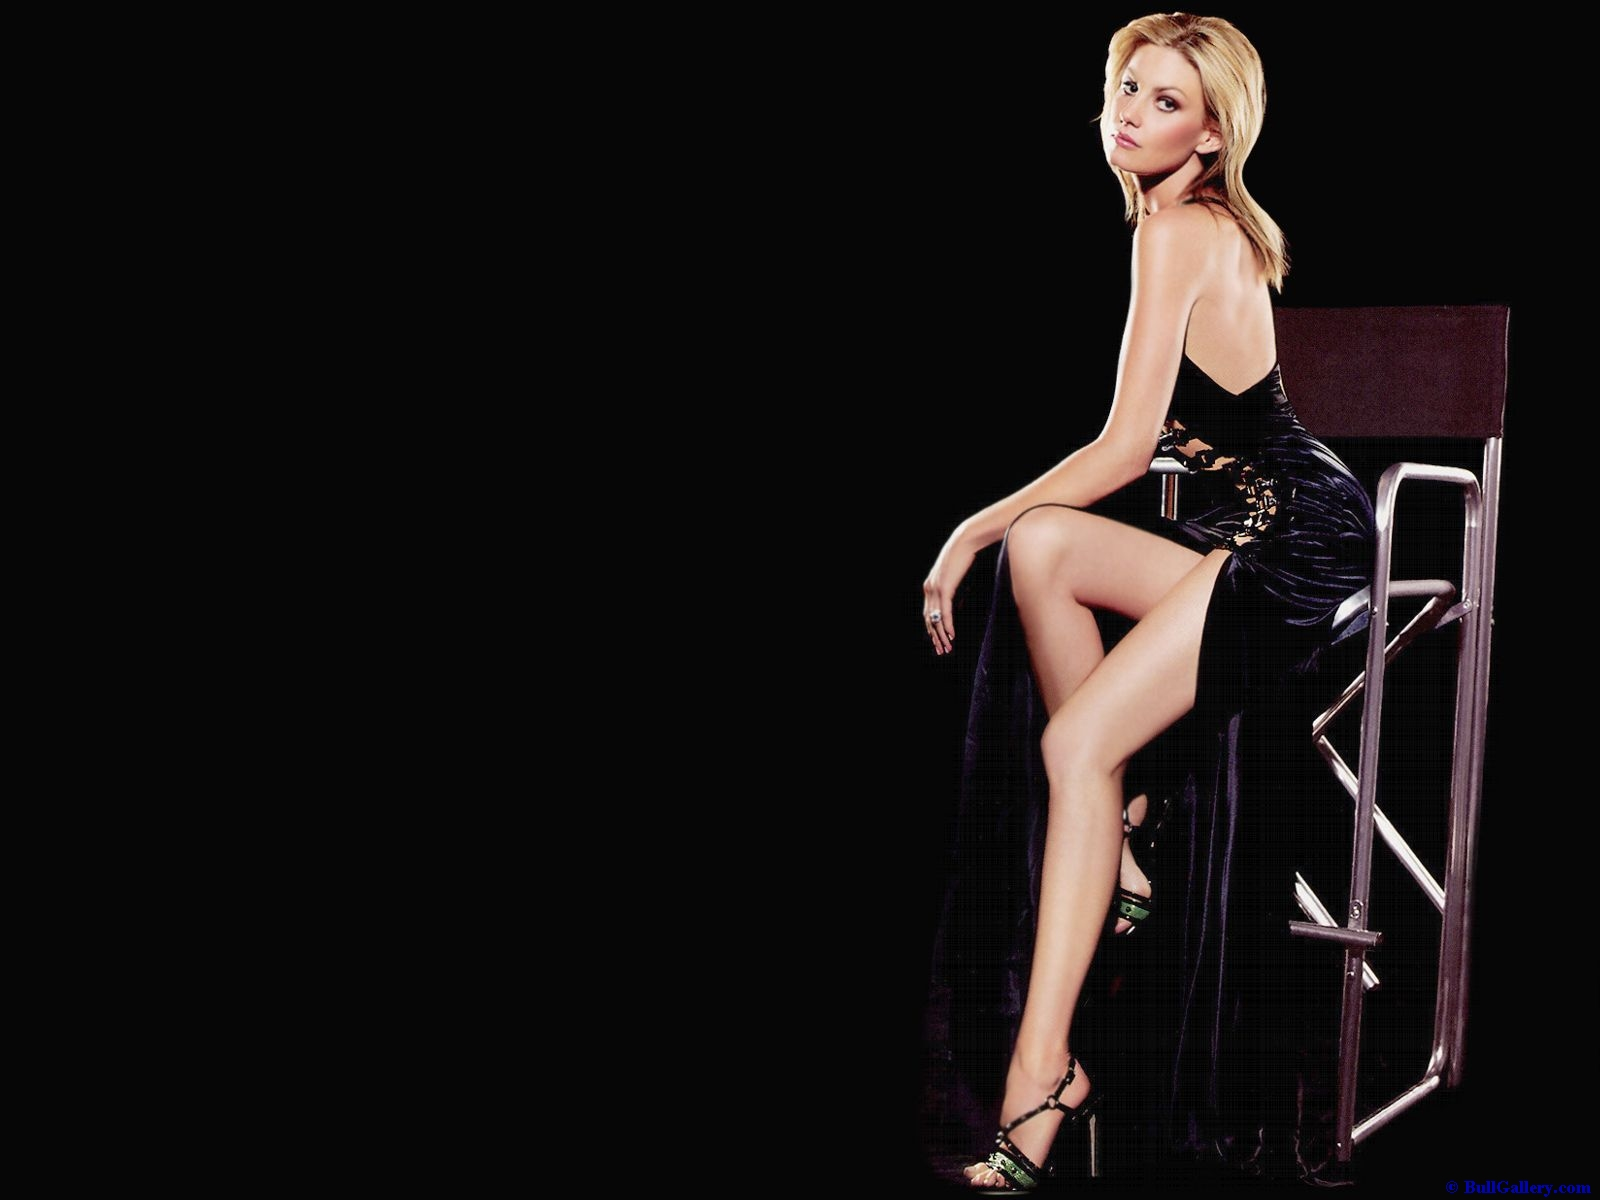 http://3.bp.blogspot.com/-AnPTJeVbtcU/UEmqdsMtRAI/AAAAAAAAEP4/qF6NXCOqWeQ/s1600/Faith-Hill-Widescreen-Wallpapers.jpg